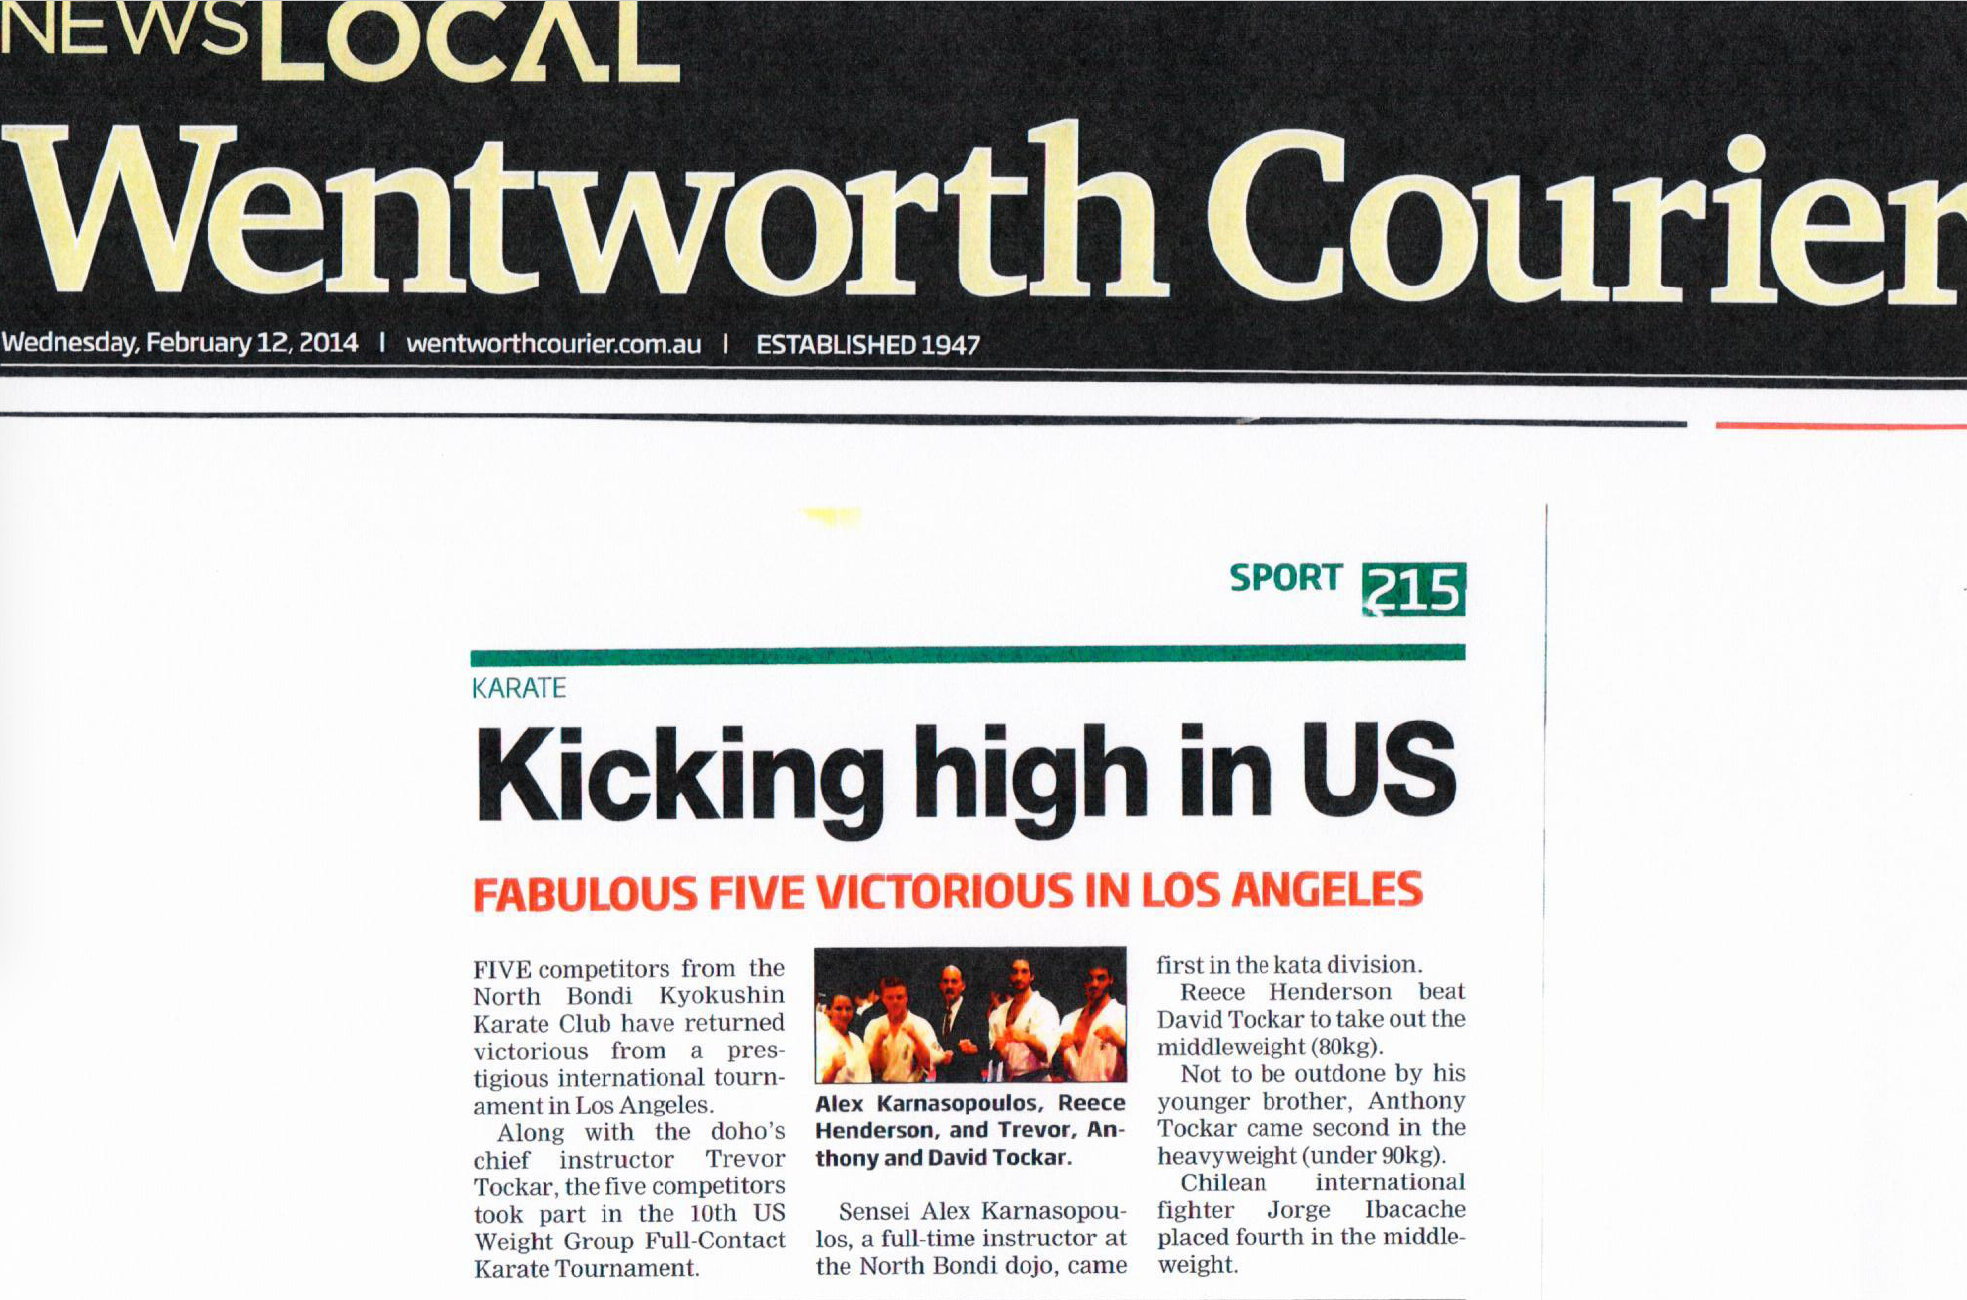 Read Wentworth Courier